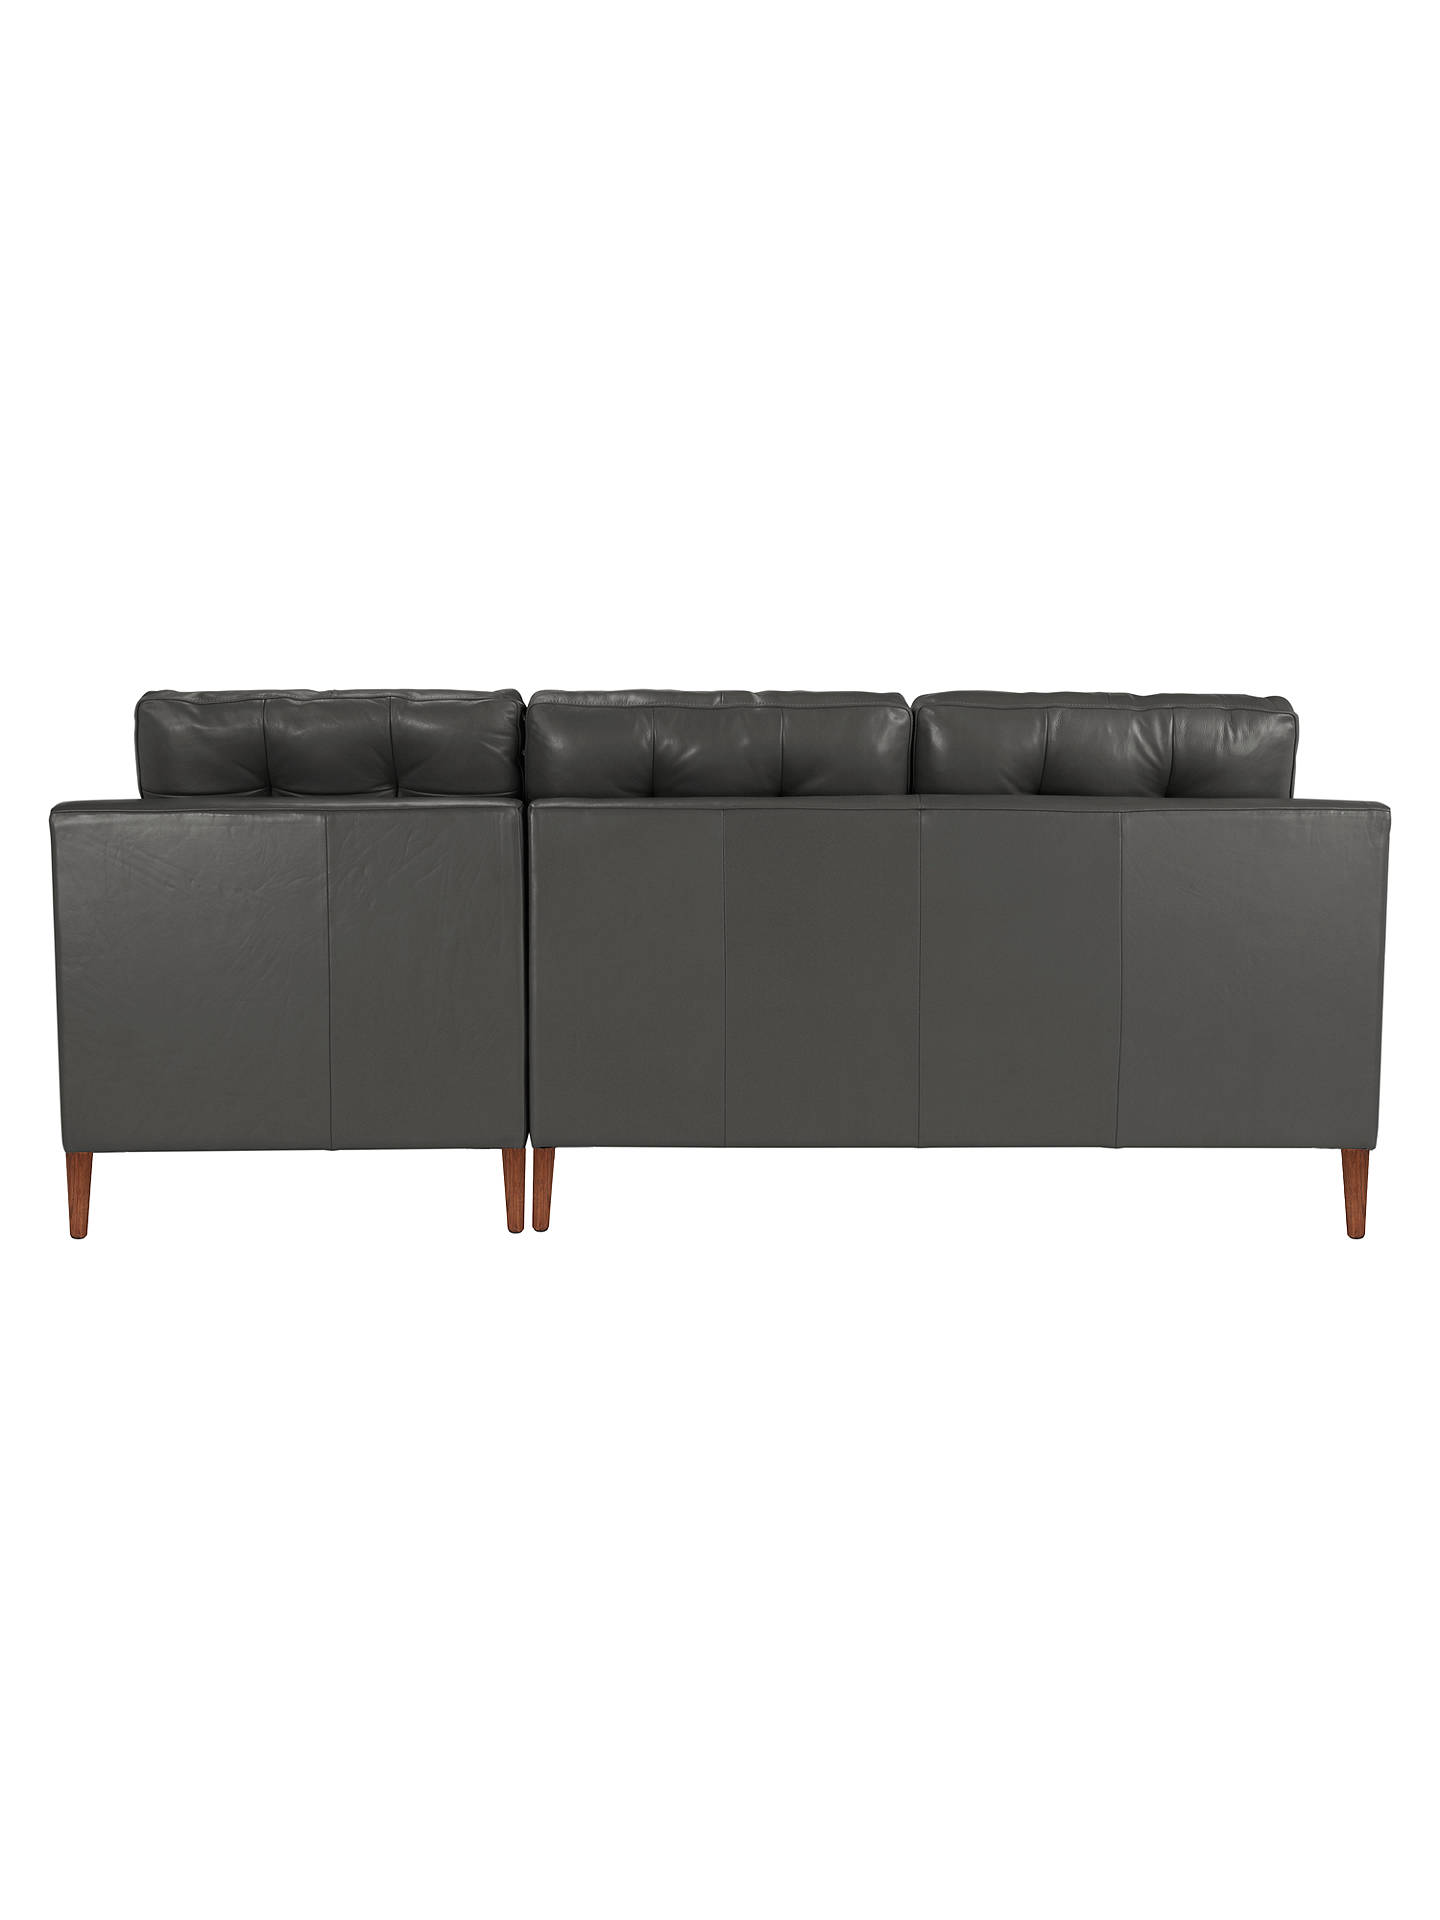 Buy John Lewis & Partners Draper RHF Chaise End Leather Sofa, Dark Leg, Winchester Anthracite Online at johnlewis.com